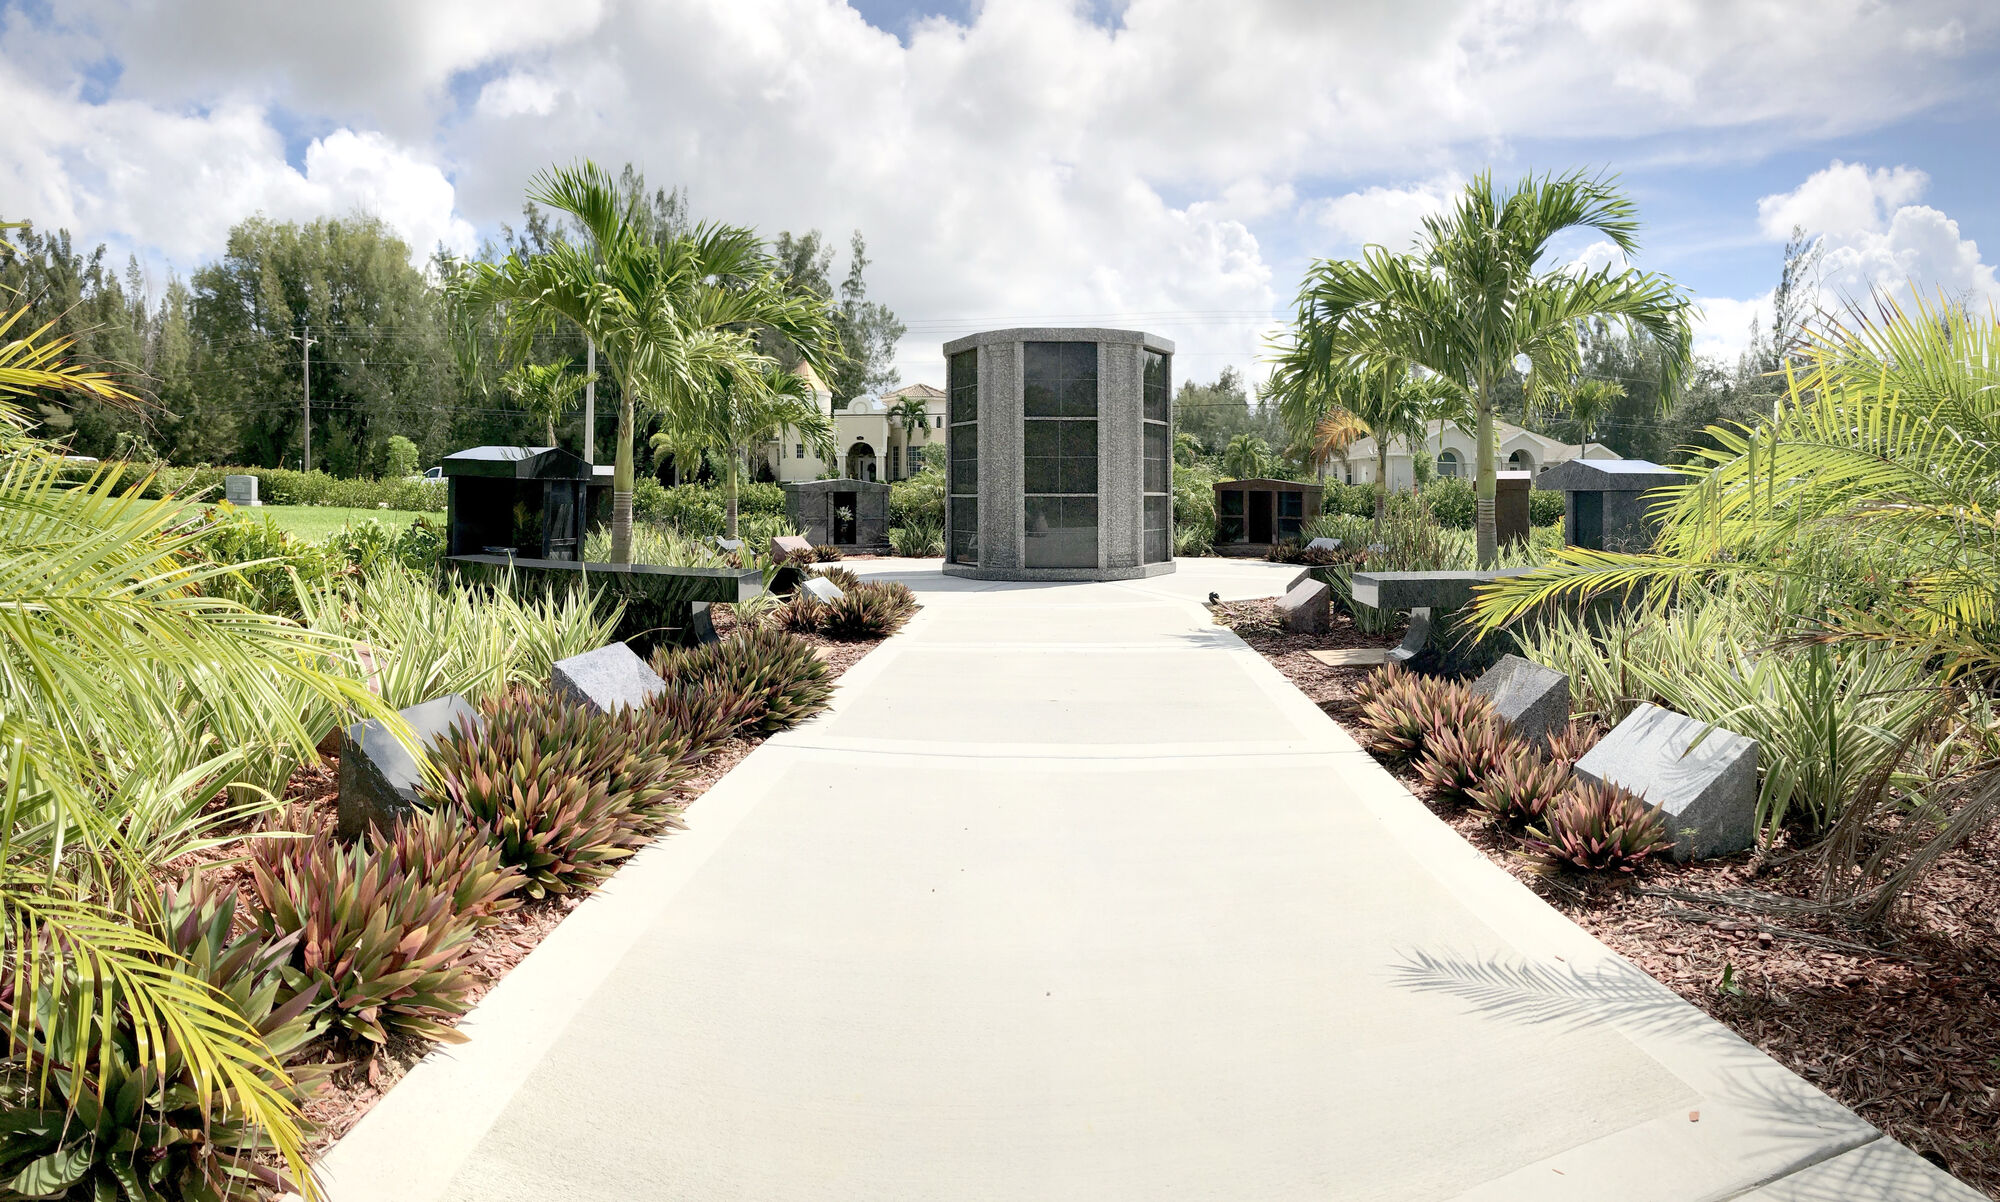 Cremation Garden at Coral Ridge Funeral Home and Coral Ridge Cemetery